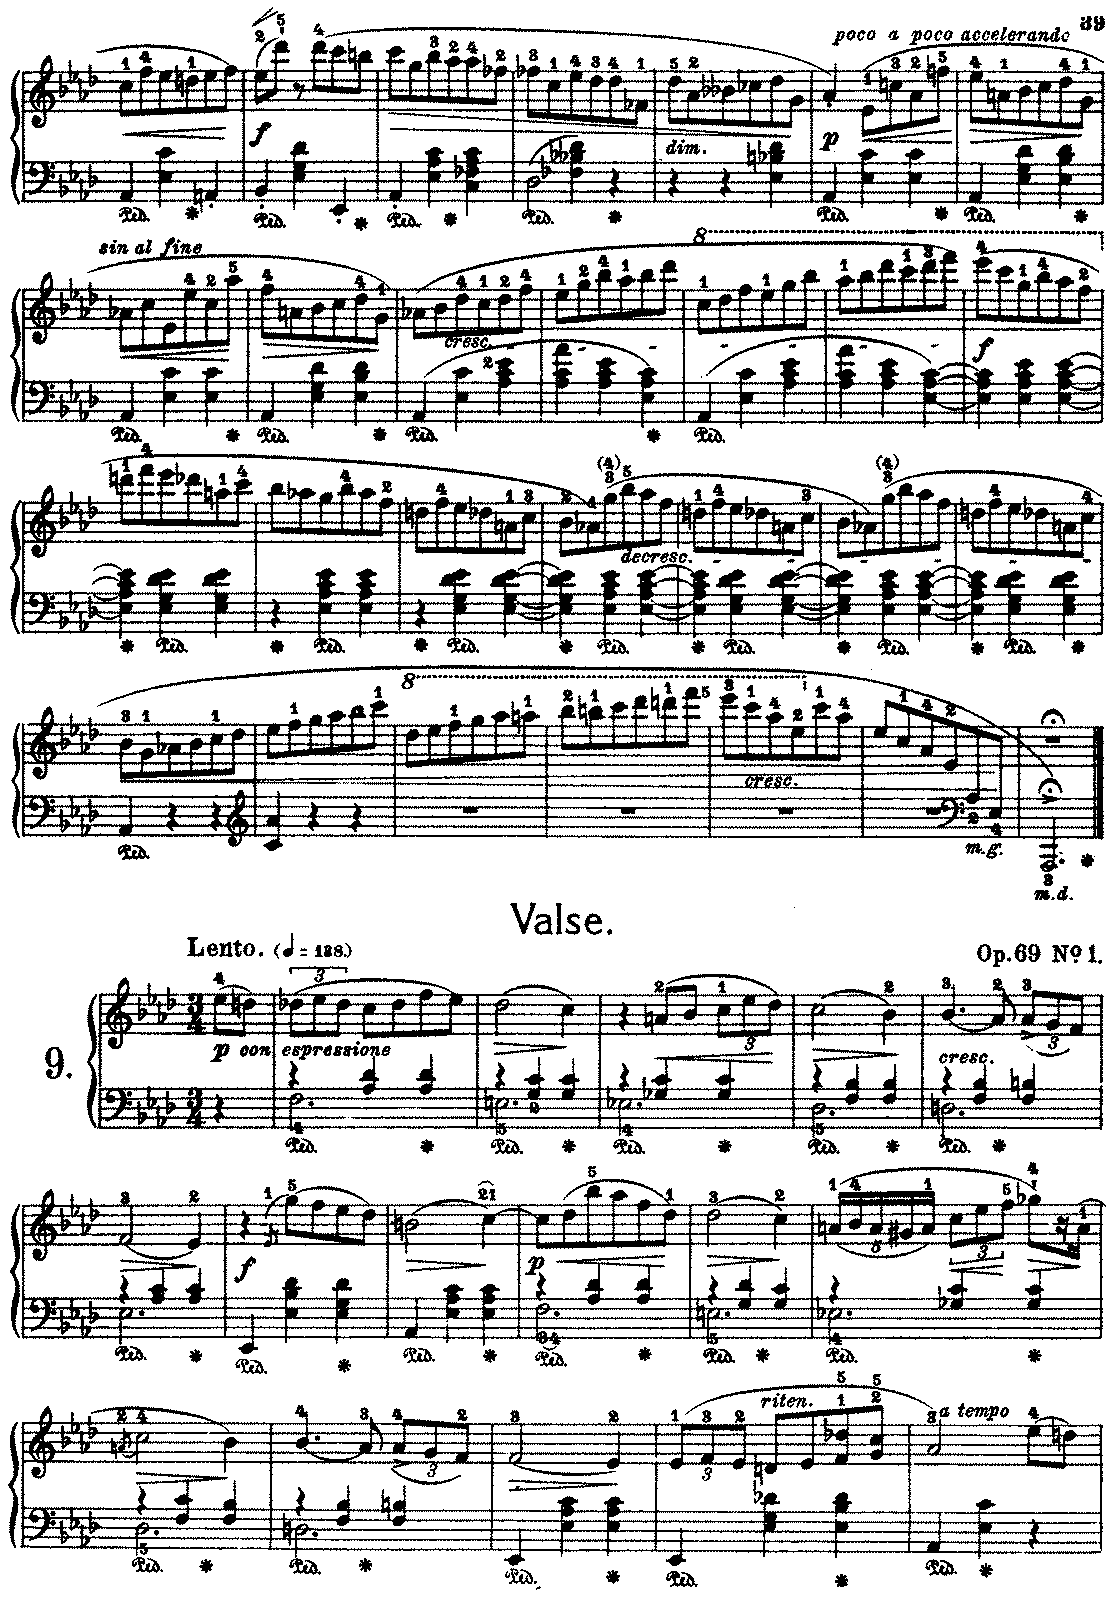 Chopin Waltz Minor Posthumous Pdf - streamsxsonar